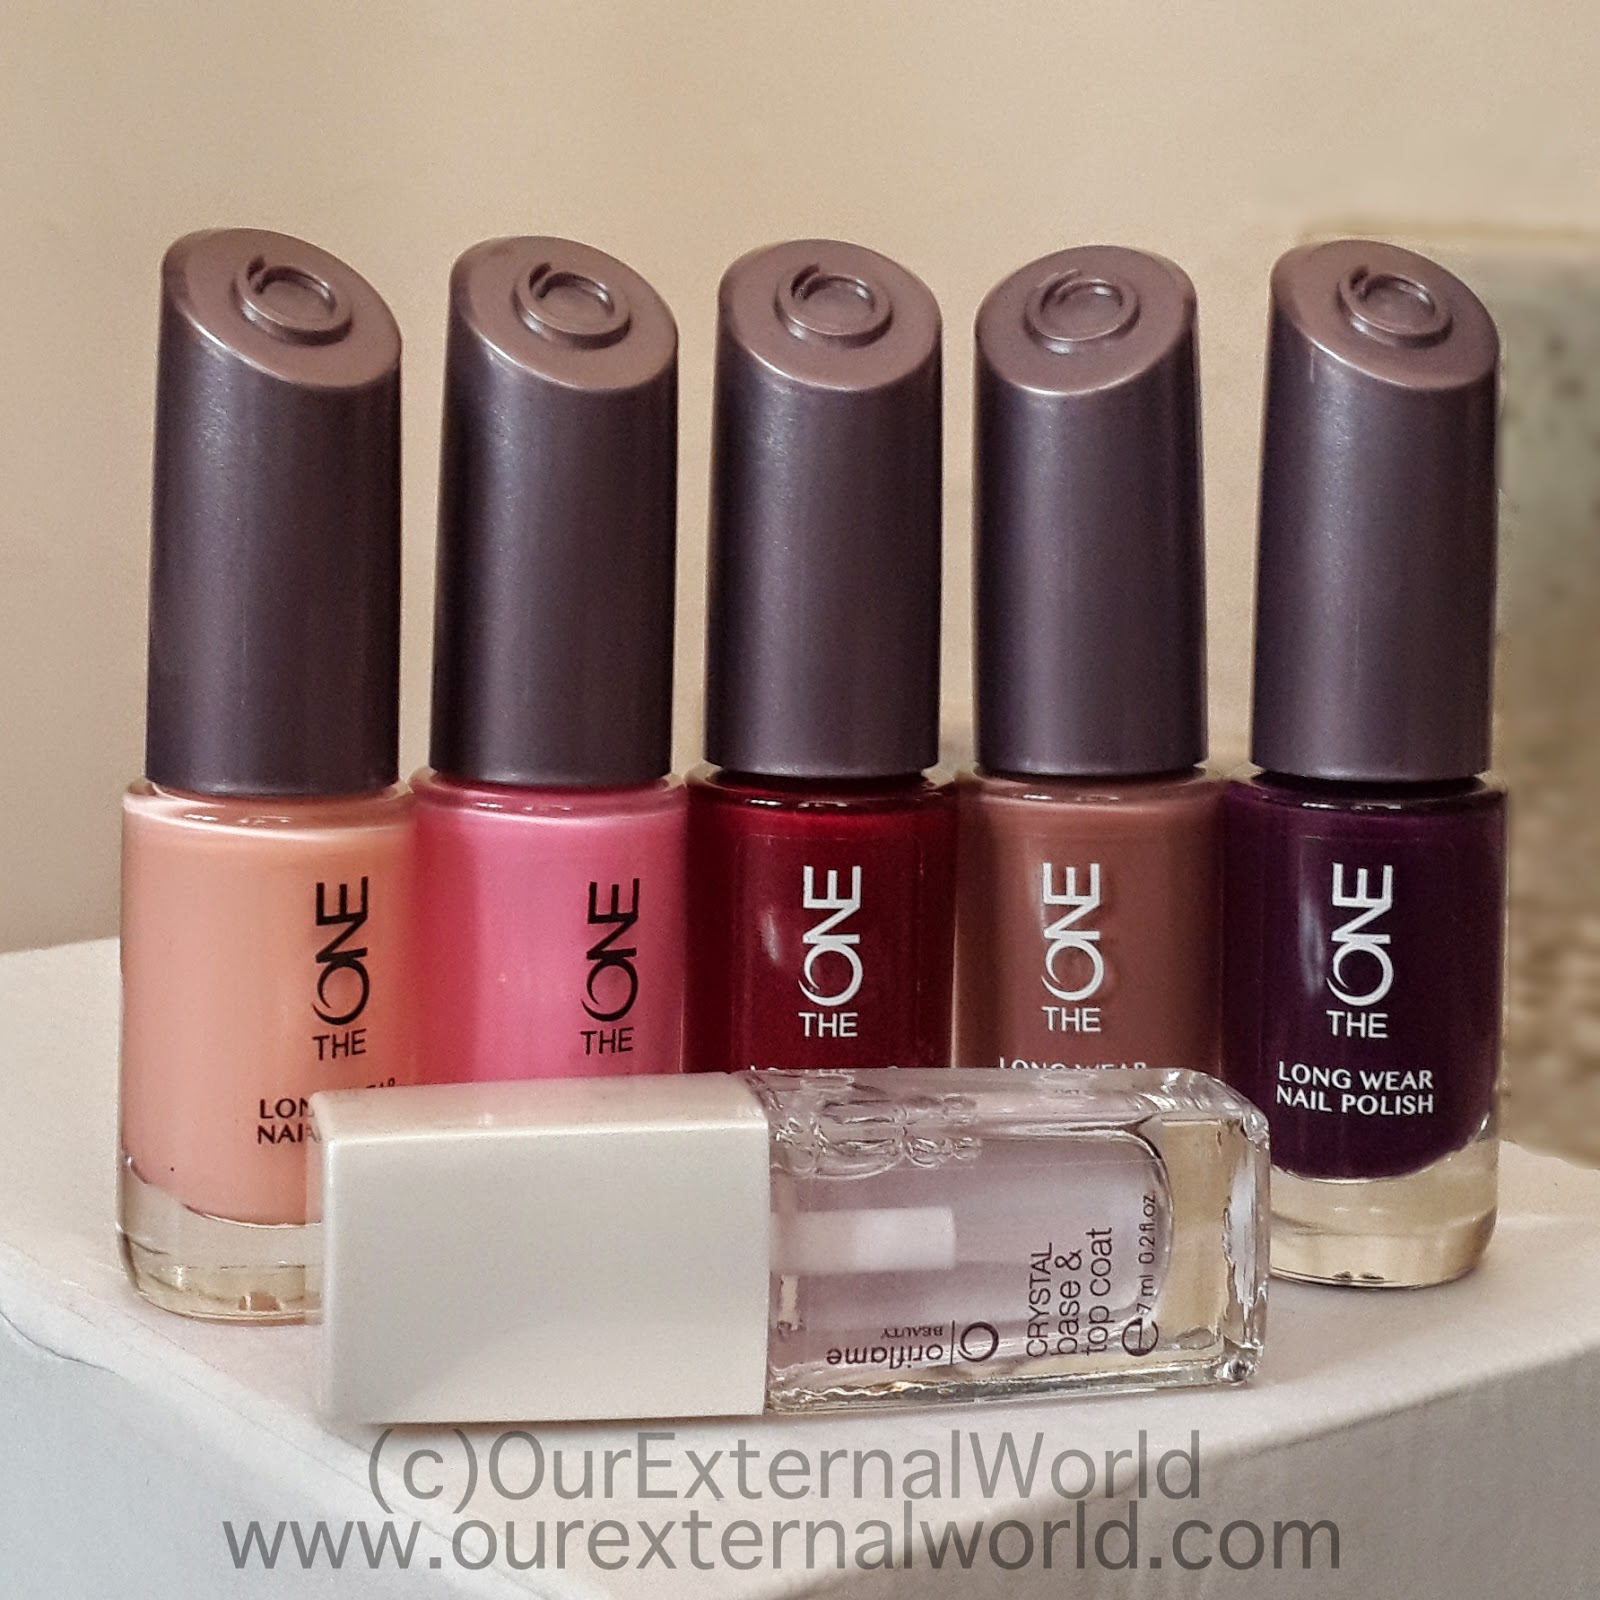 Oriflame TheOne Long Wear Nail Polish Swatches And Review